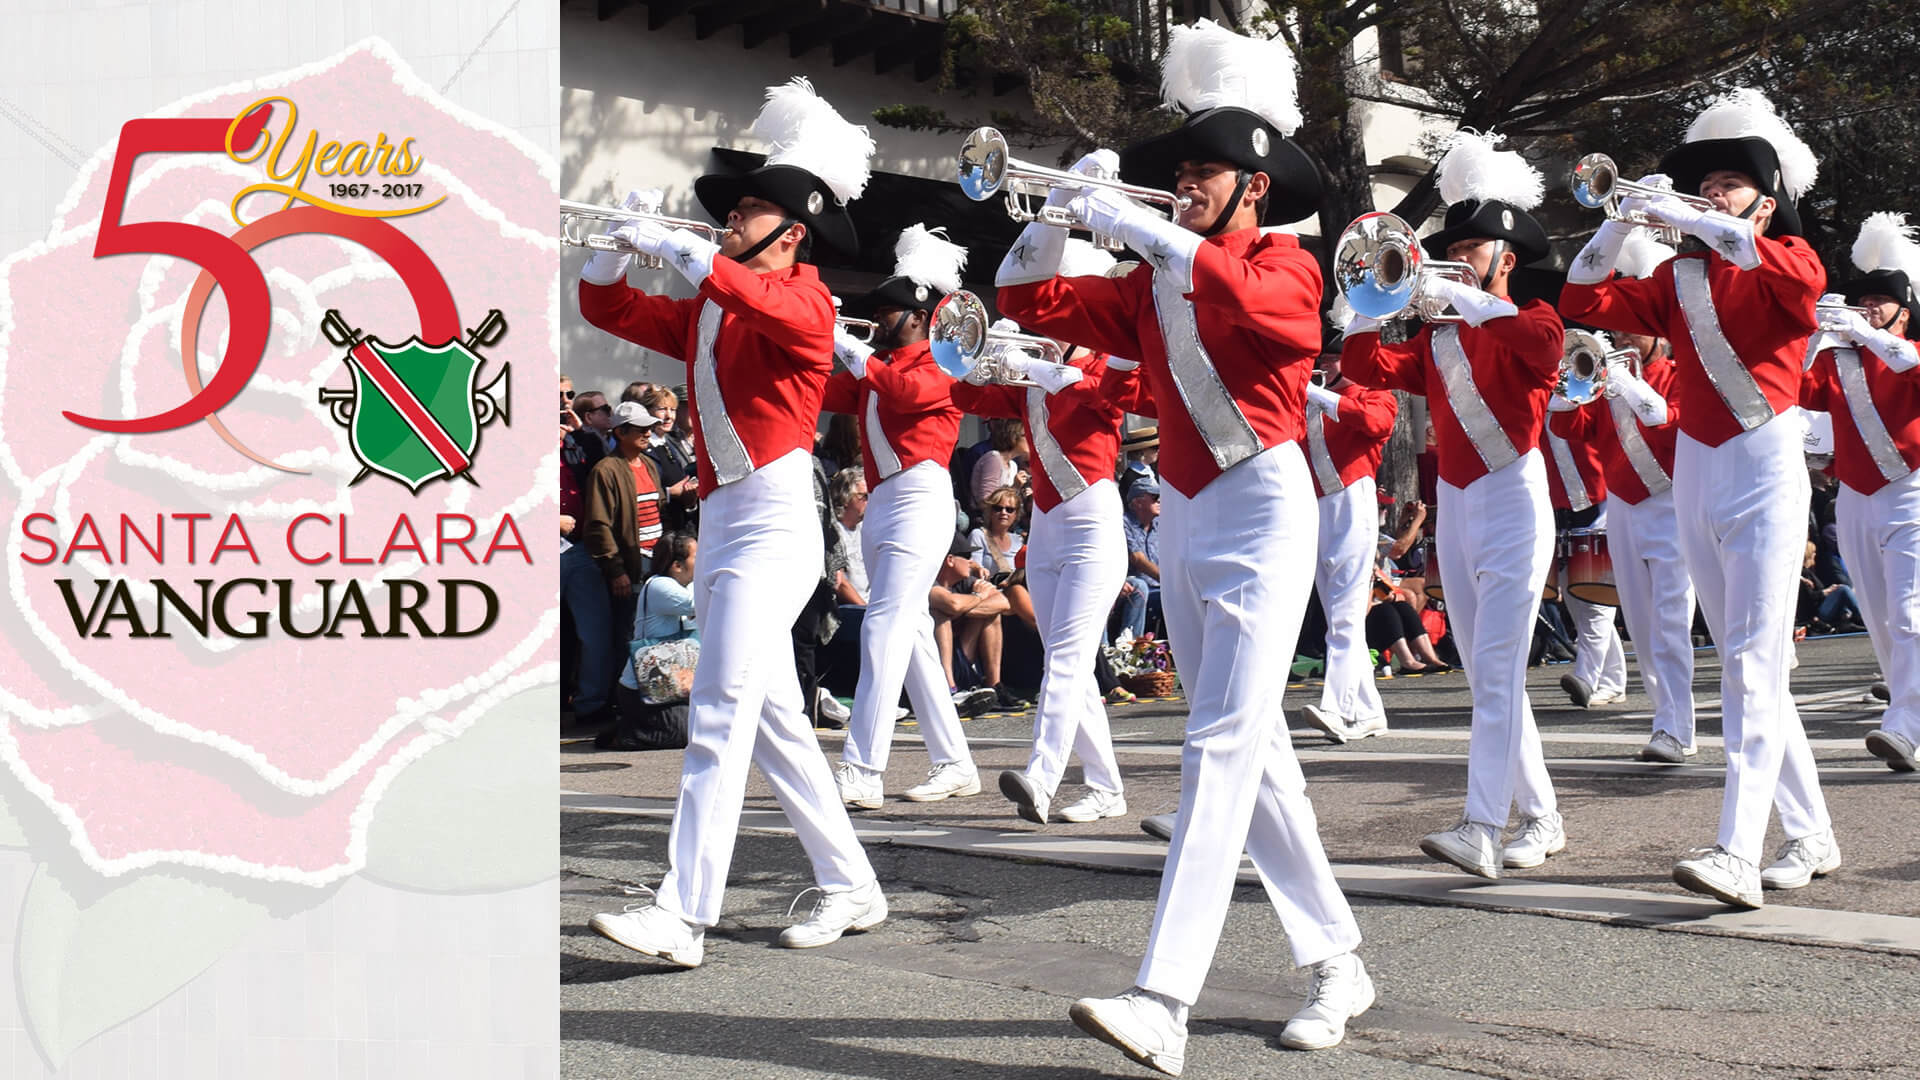 Everything's coming up roses for Santa Clara Vanguard's golden